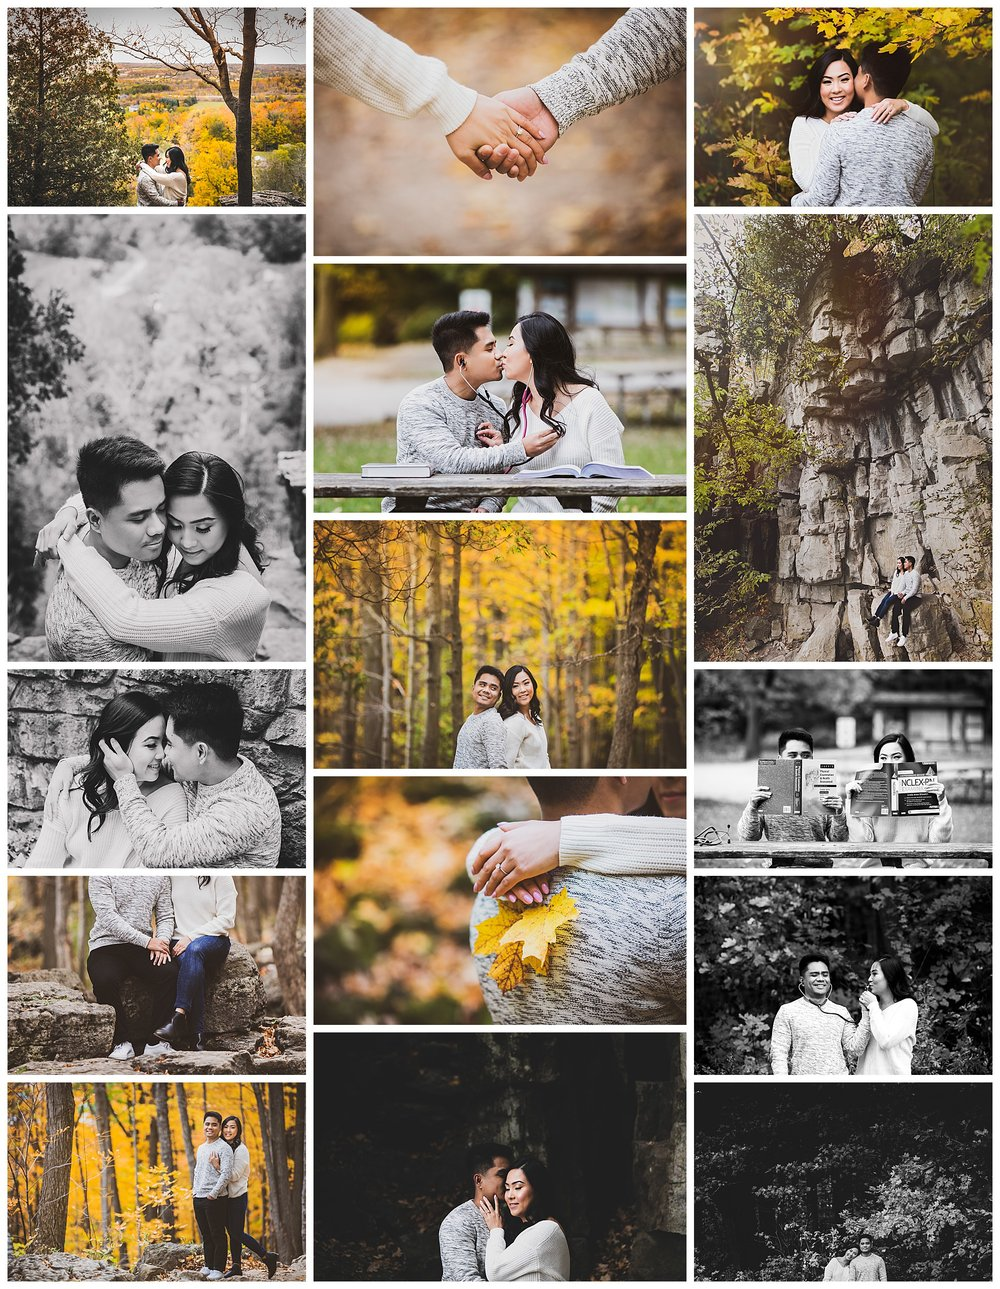 Rattlesnake Point, Milton, Ontario engagement photography by VanDaele & Russell